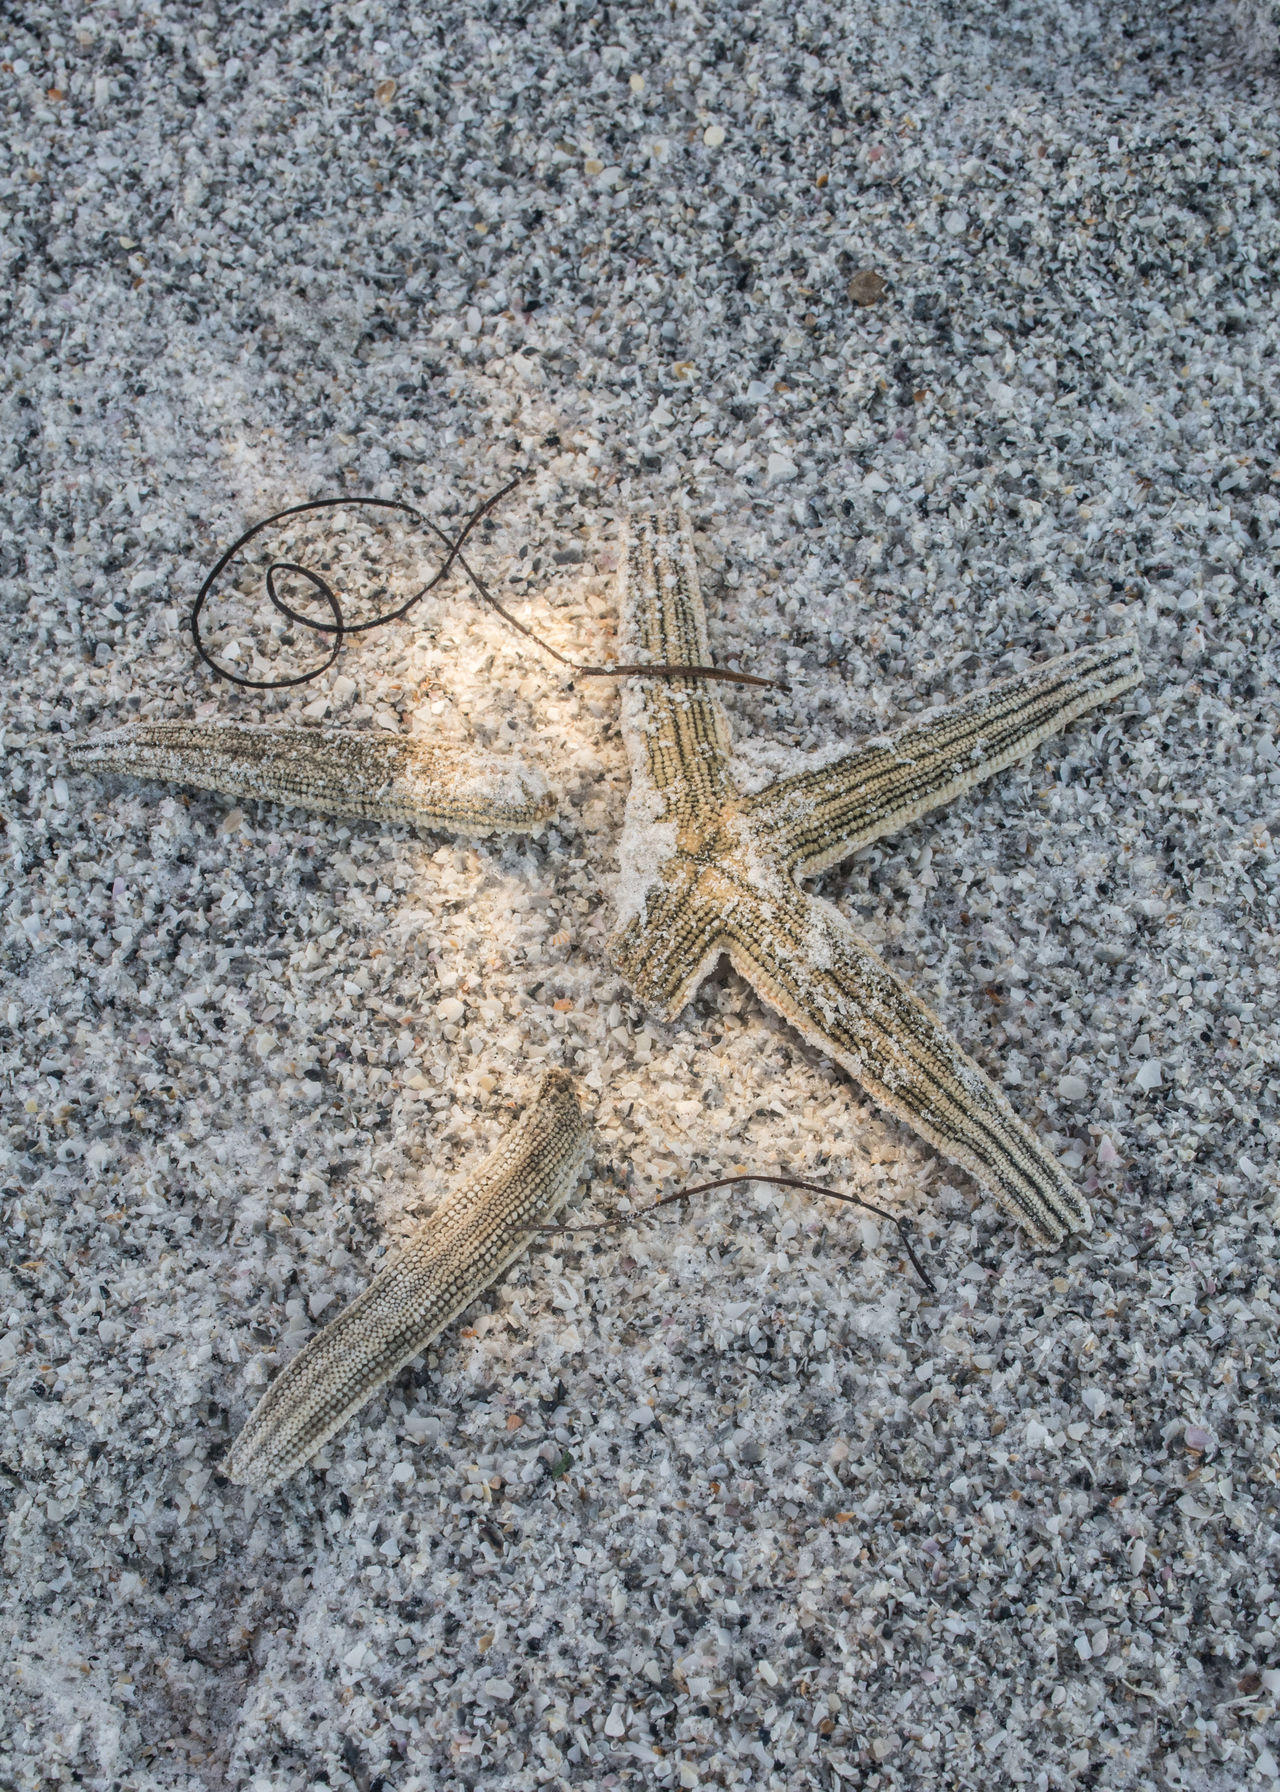 Broken, yet still beautiful! Animal Themes Beach Beachphotography Beauty In Nature Close-up Found Object Island Life No People Ocean Oceanside On The Shore Outdoors Sea Life Starfish  Starfish At Beach